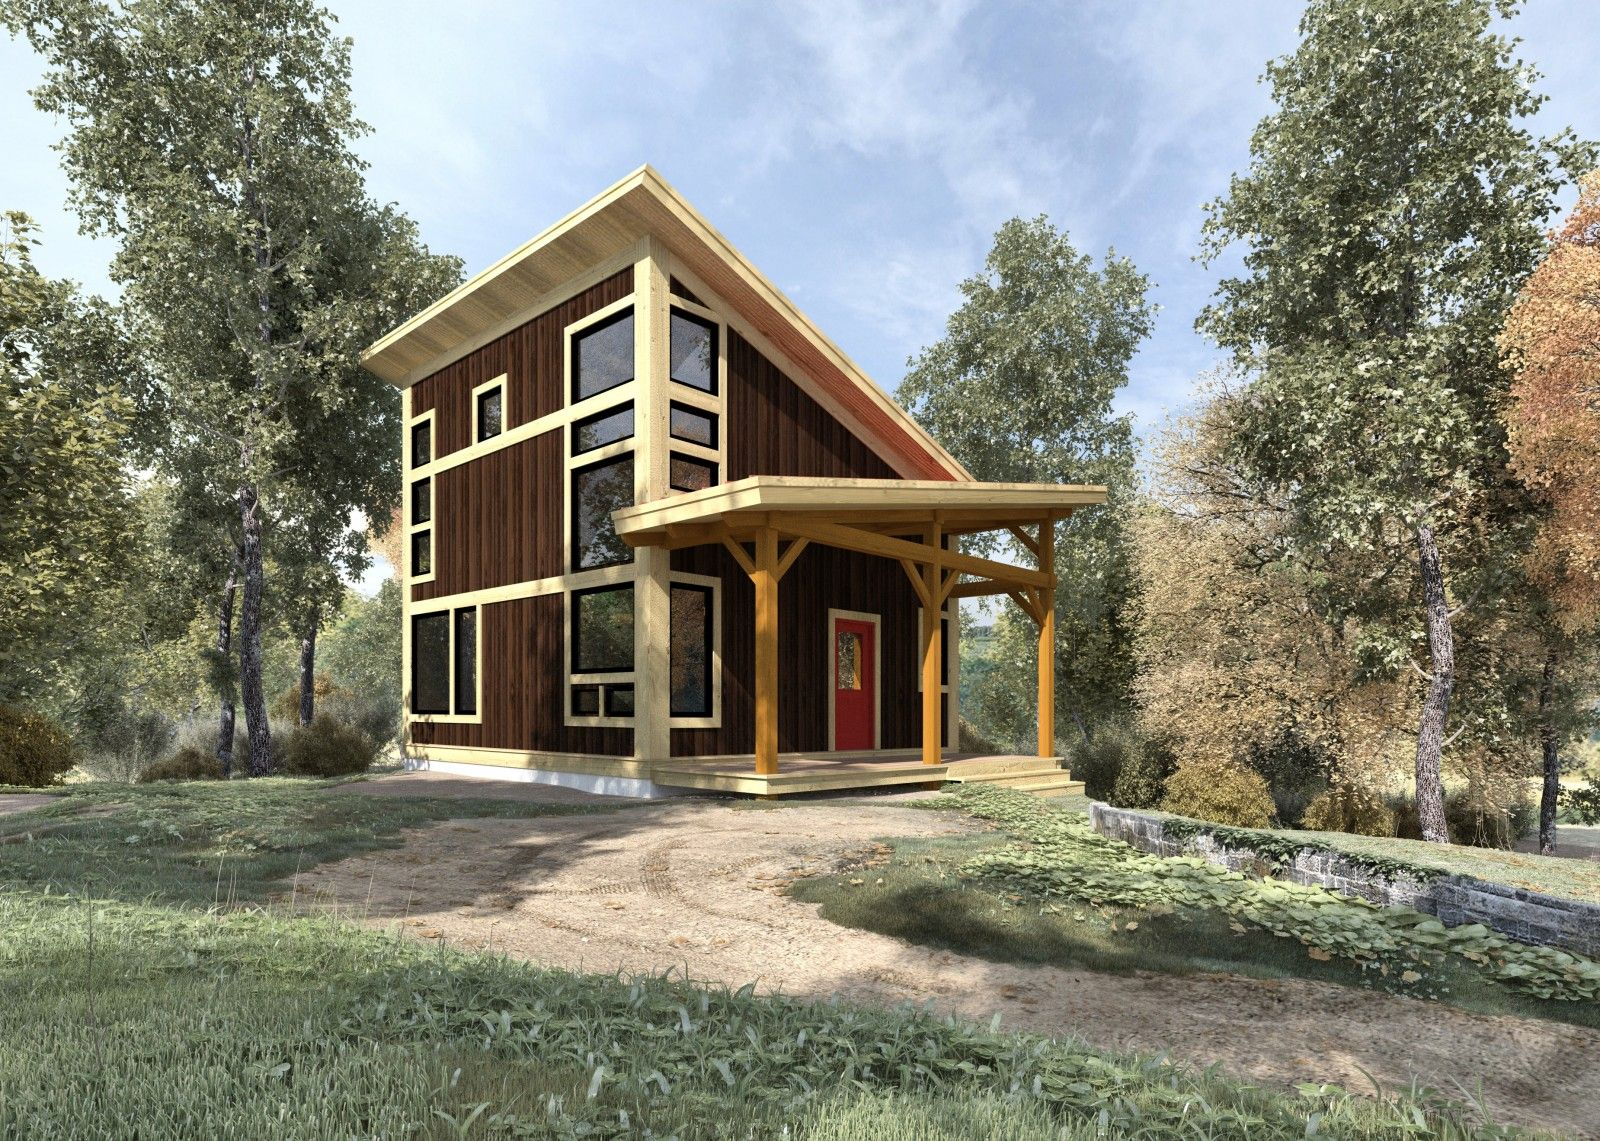 Http Www Timberframe1 Com Timber Frame Homes Cabin Homes Series Small Timber Frame Cabin Timber Frame Home Plans Rustic House Plans